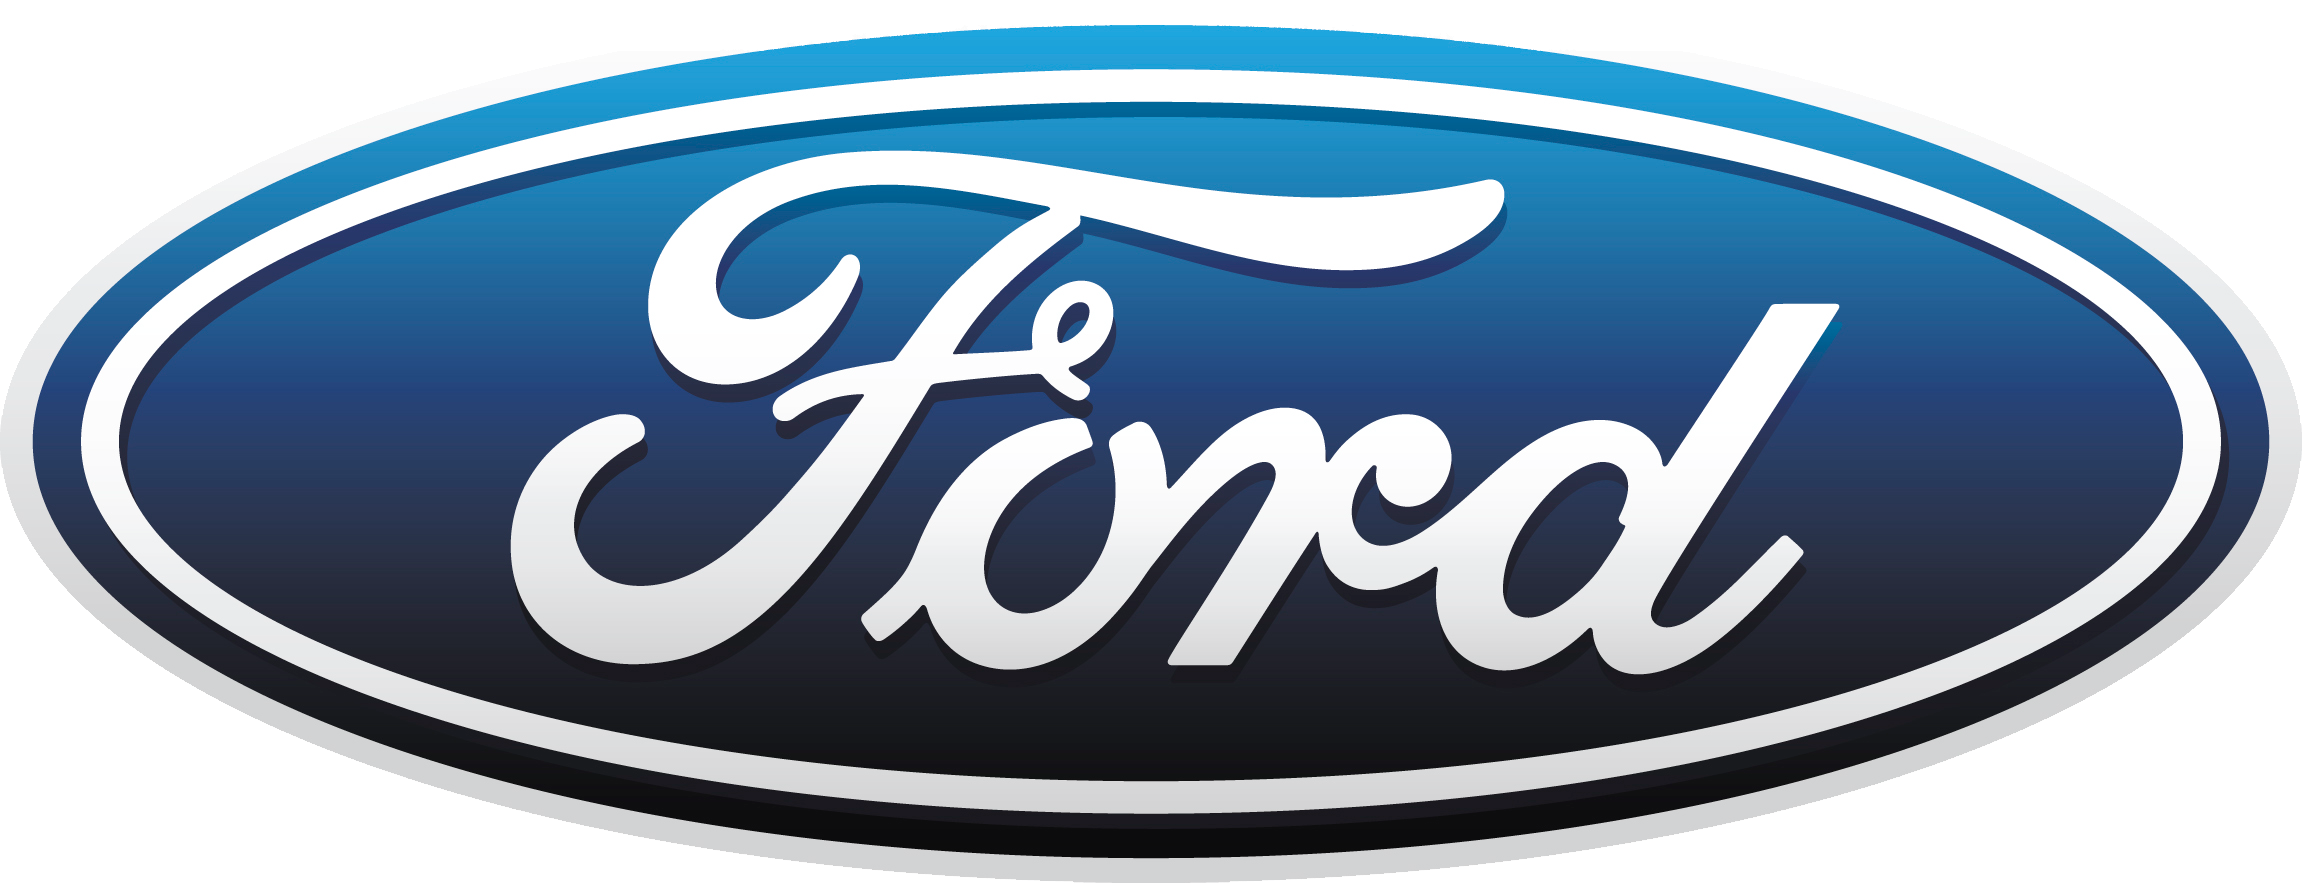 Ford car logo PNG brand image